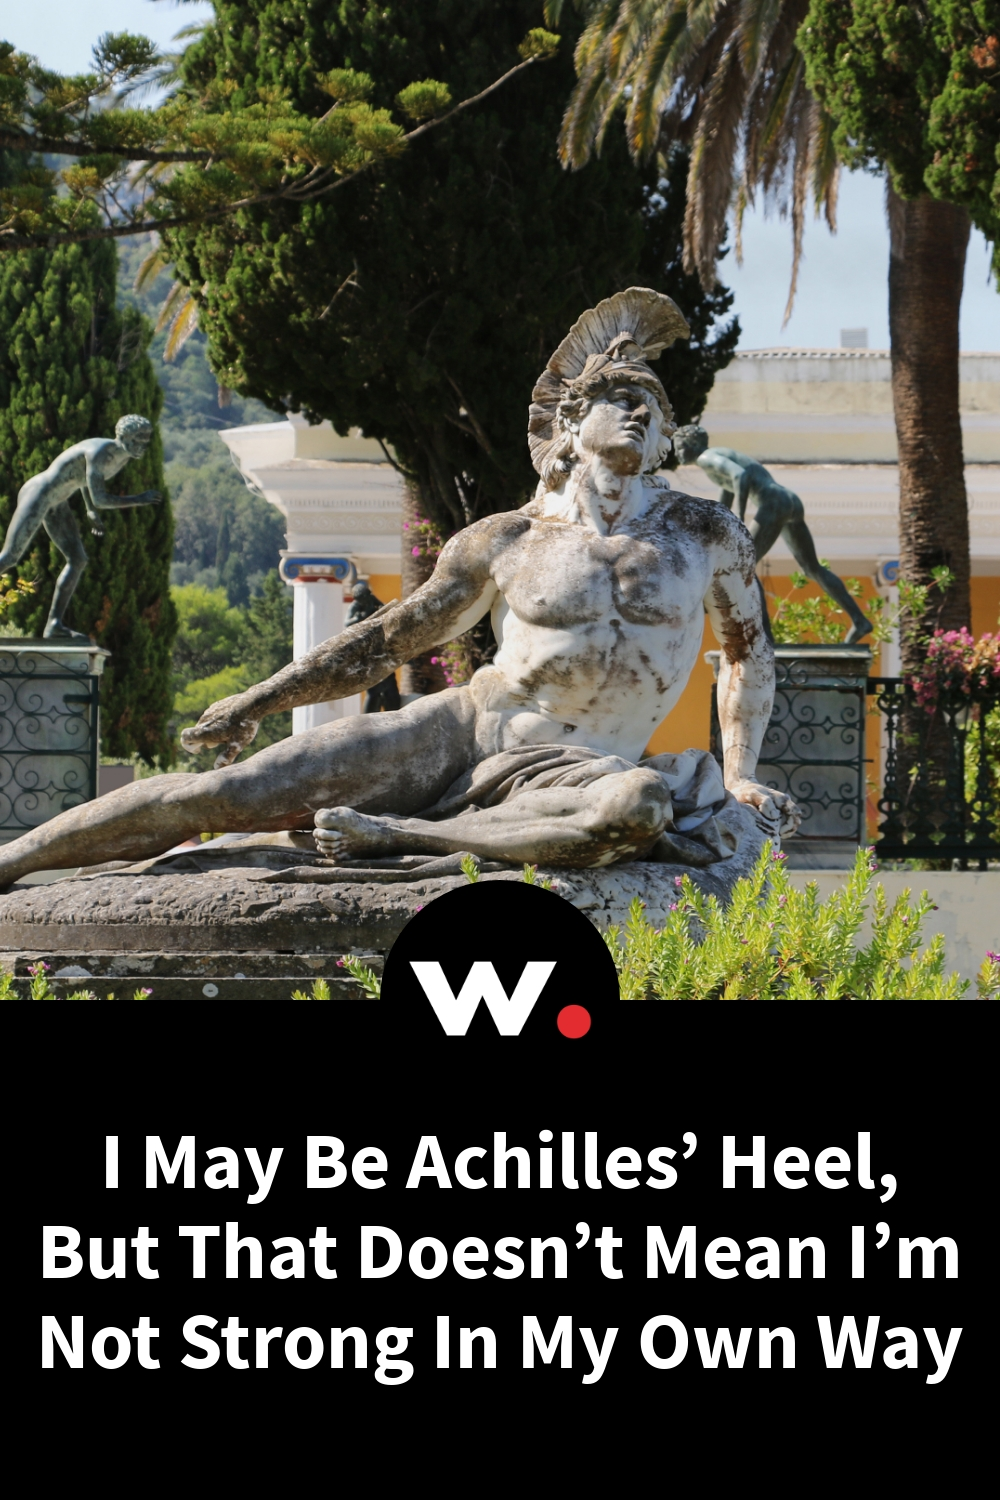 I May Be Achilles' Heel, But That Doesn't Mean I'm Not Strong In My Own Way